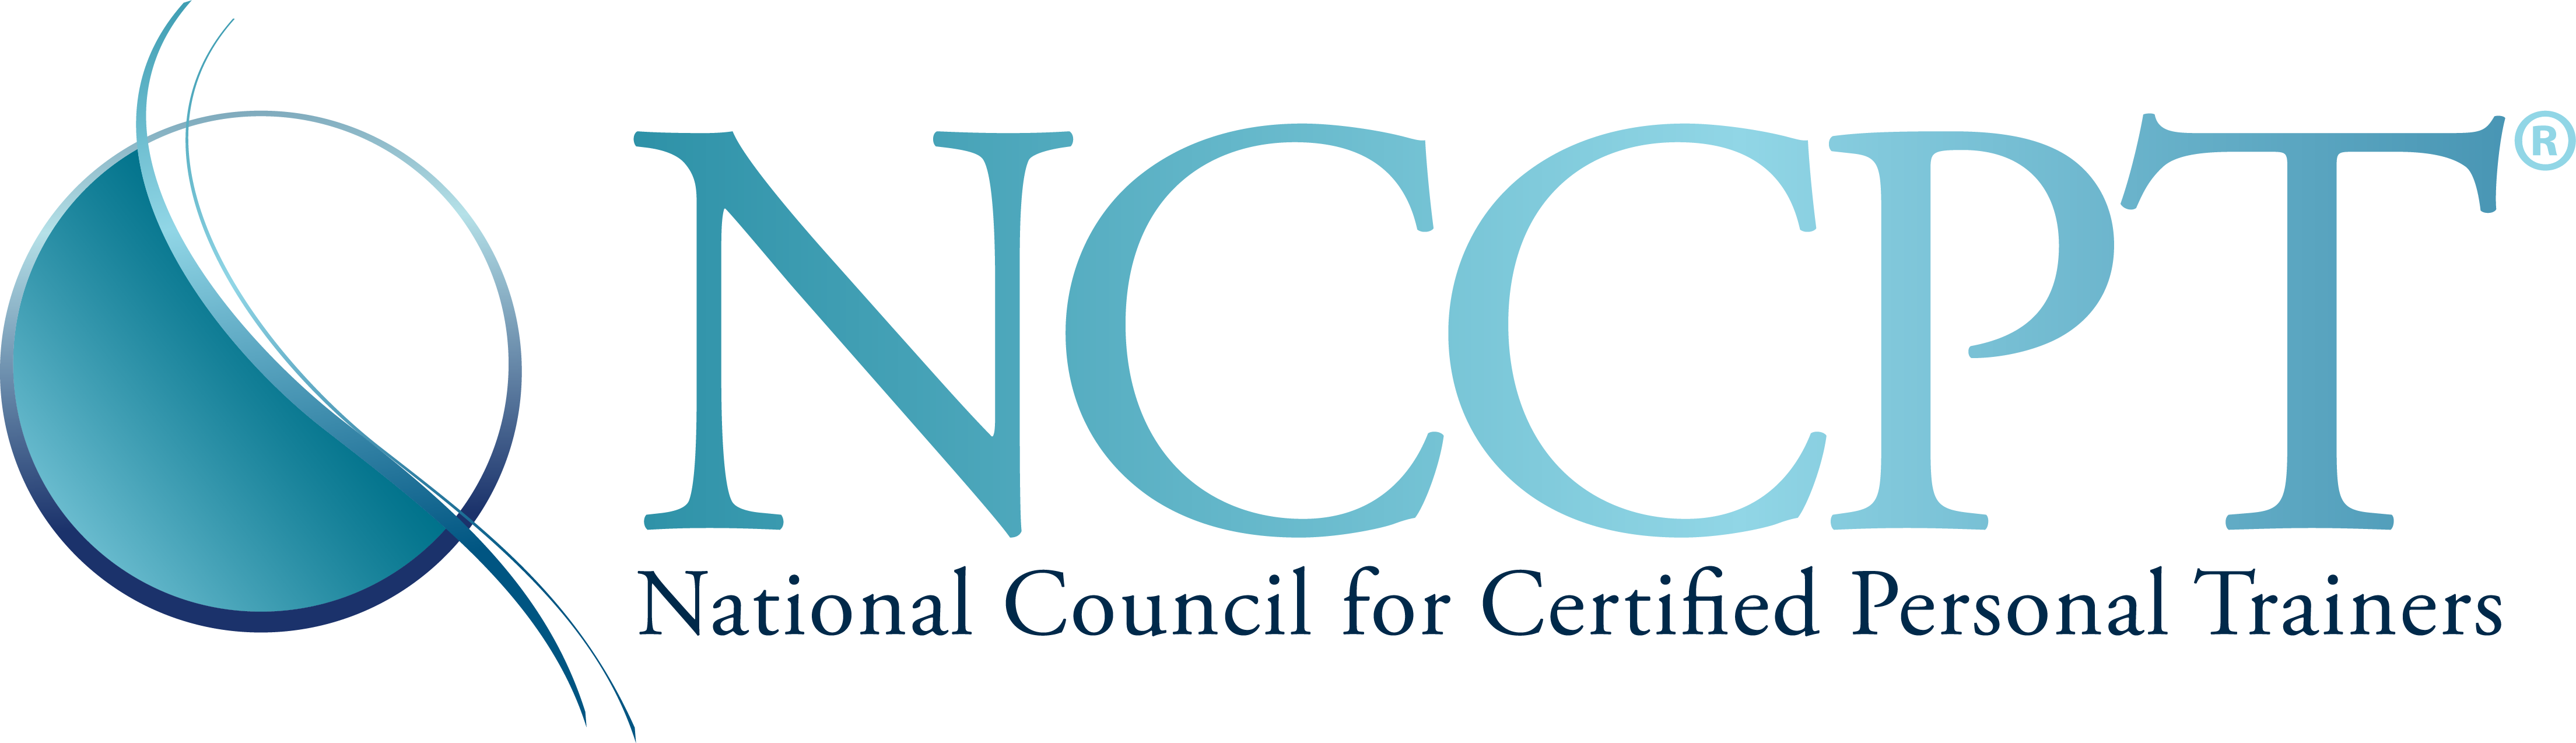 NCCPT (National Council for Certified Personal Trainers)